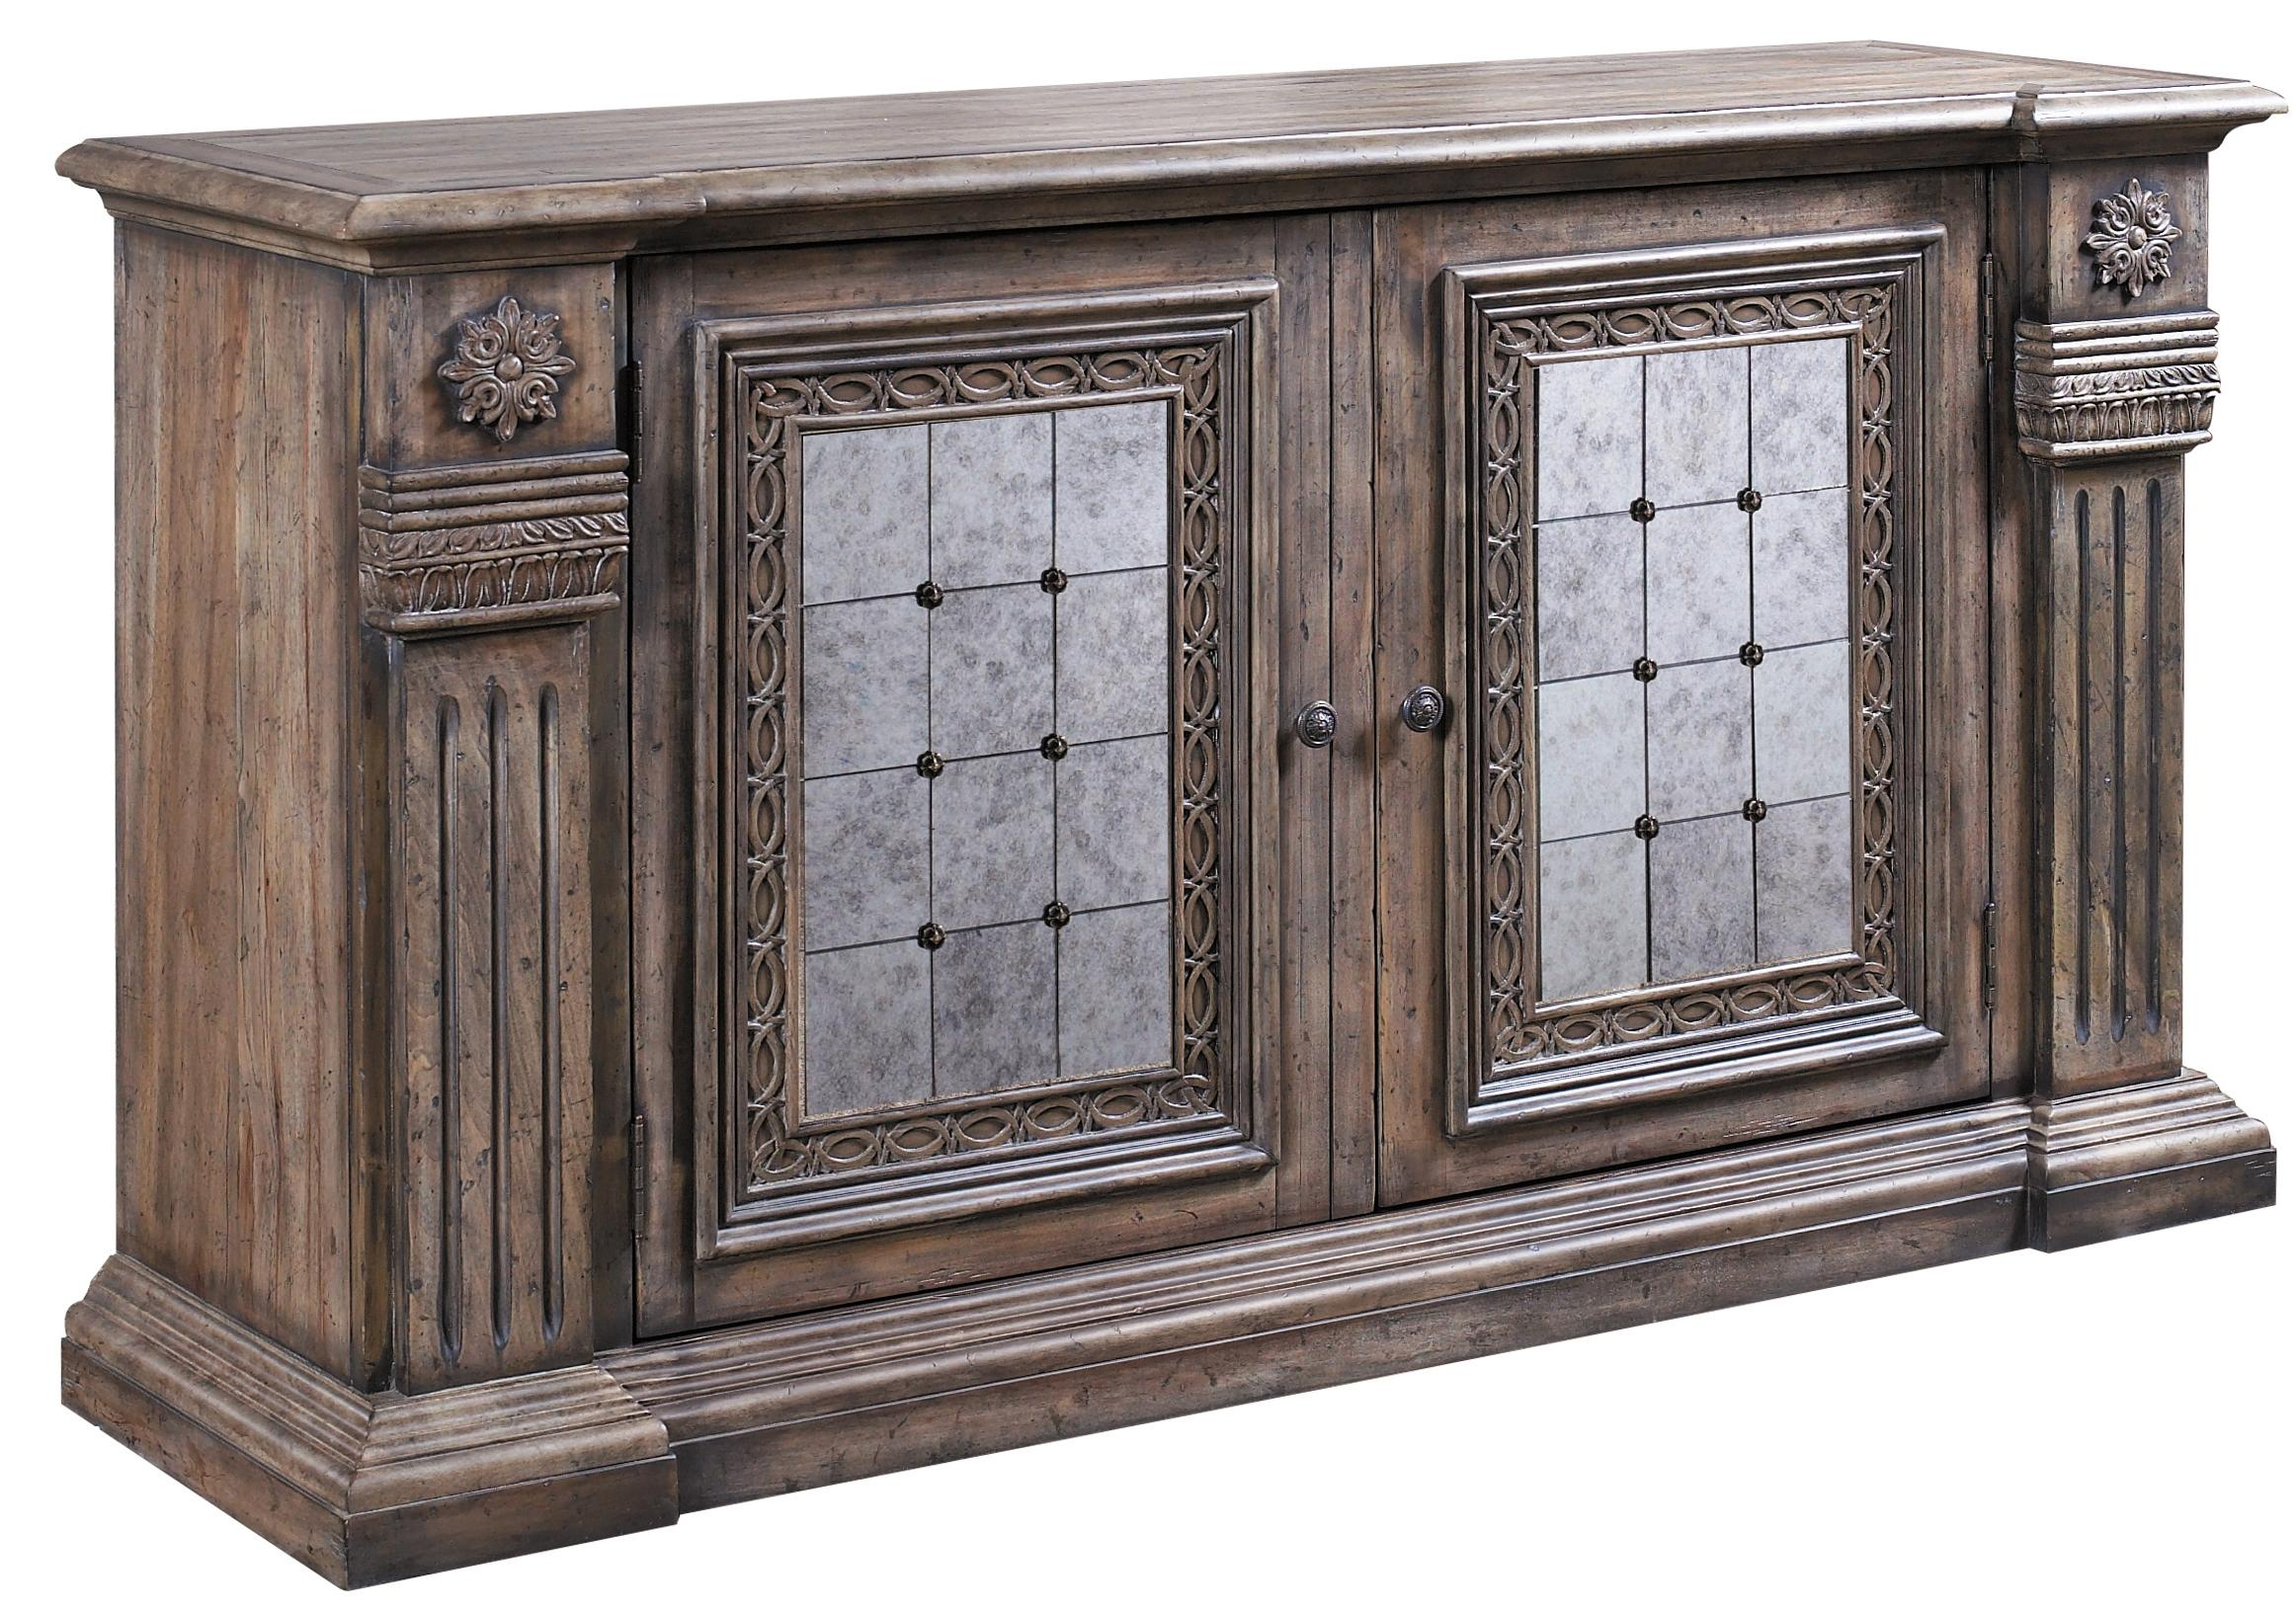 Pulaski Furniture Accentrics Home Alexandreah Credenza - Item Number: 203005